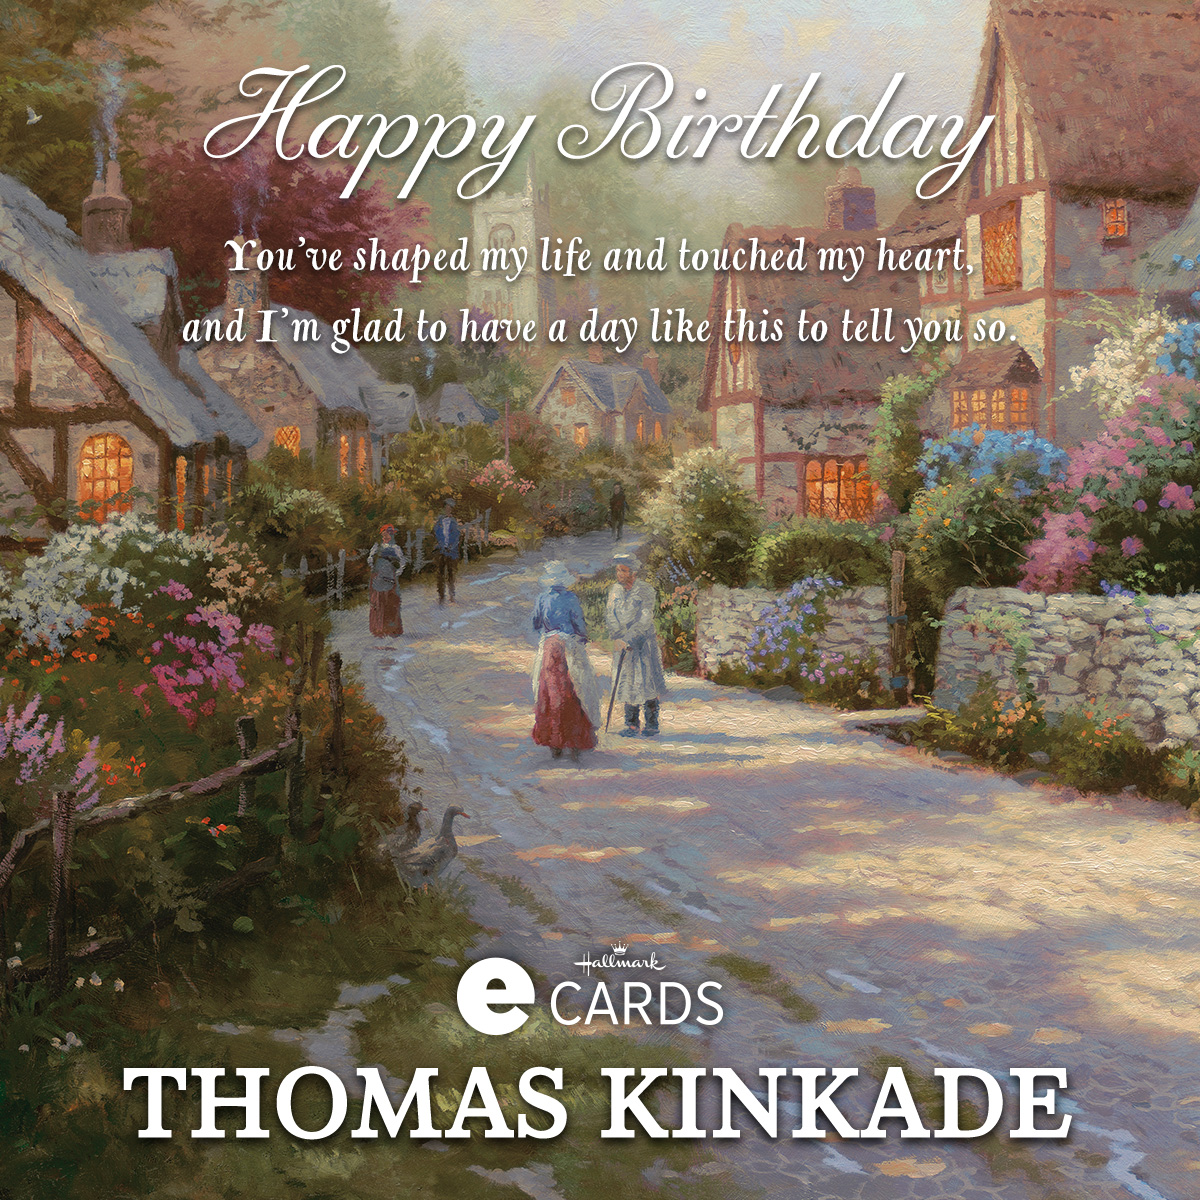 Hallmark Birthday Ecard Cobblestone Village The Thomas Kinkade